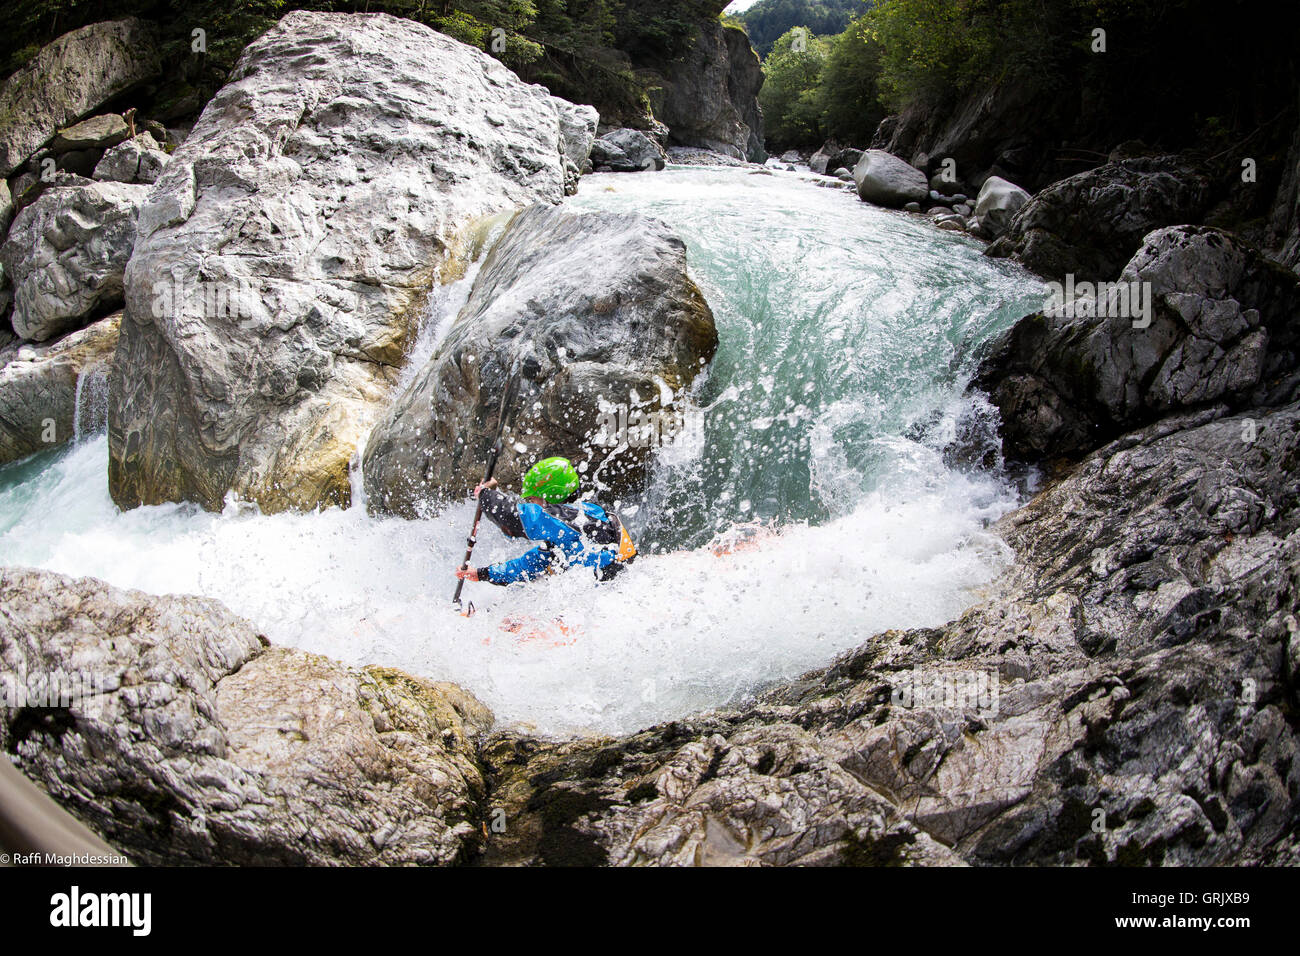 a tricky bend in kayak, Reusse River, Switzerland - Stock Image